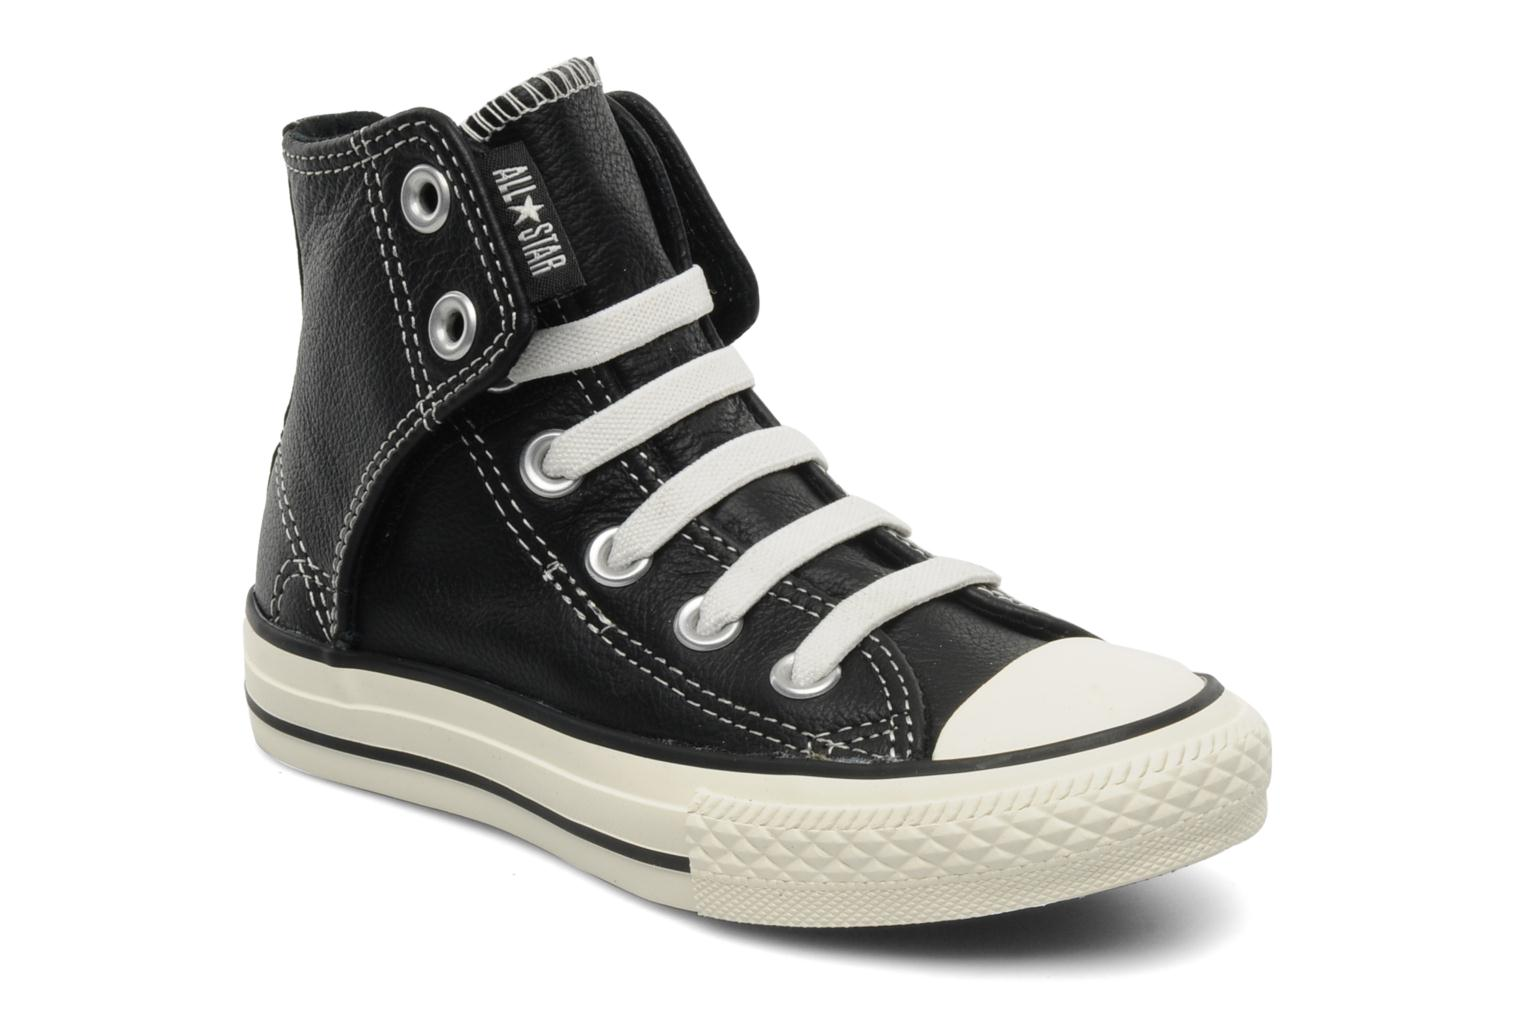 Foto Deportivas Converse Chuck Taylor All Star Easy Slip Leather Hi K Niños